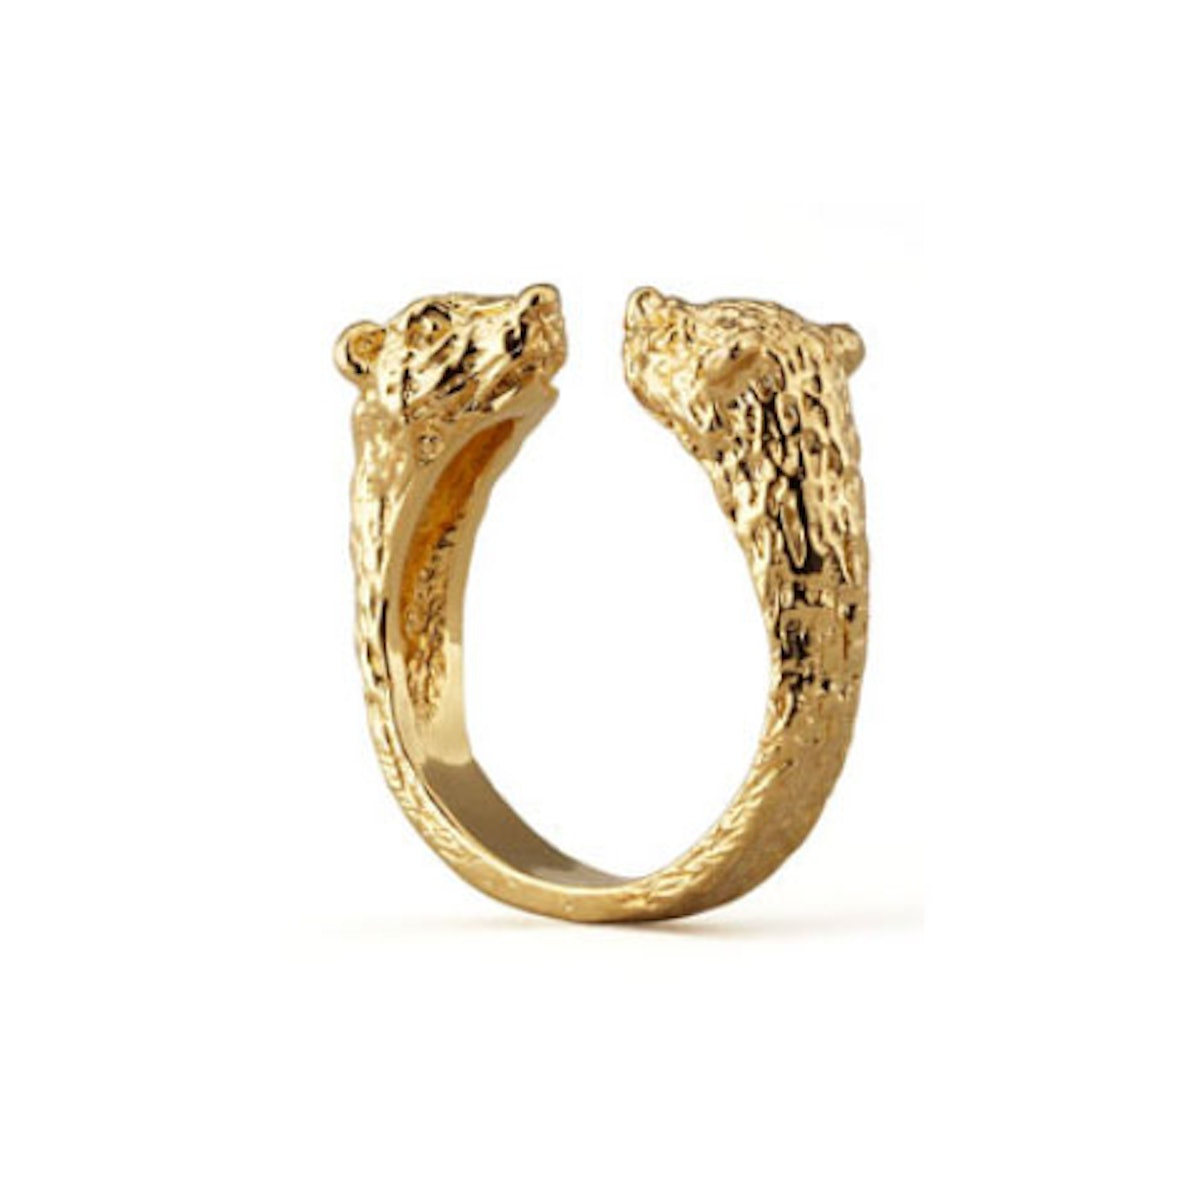 Pamela Love small bear ring in yellow gold